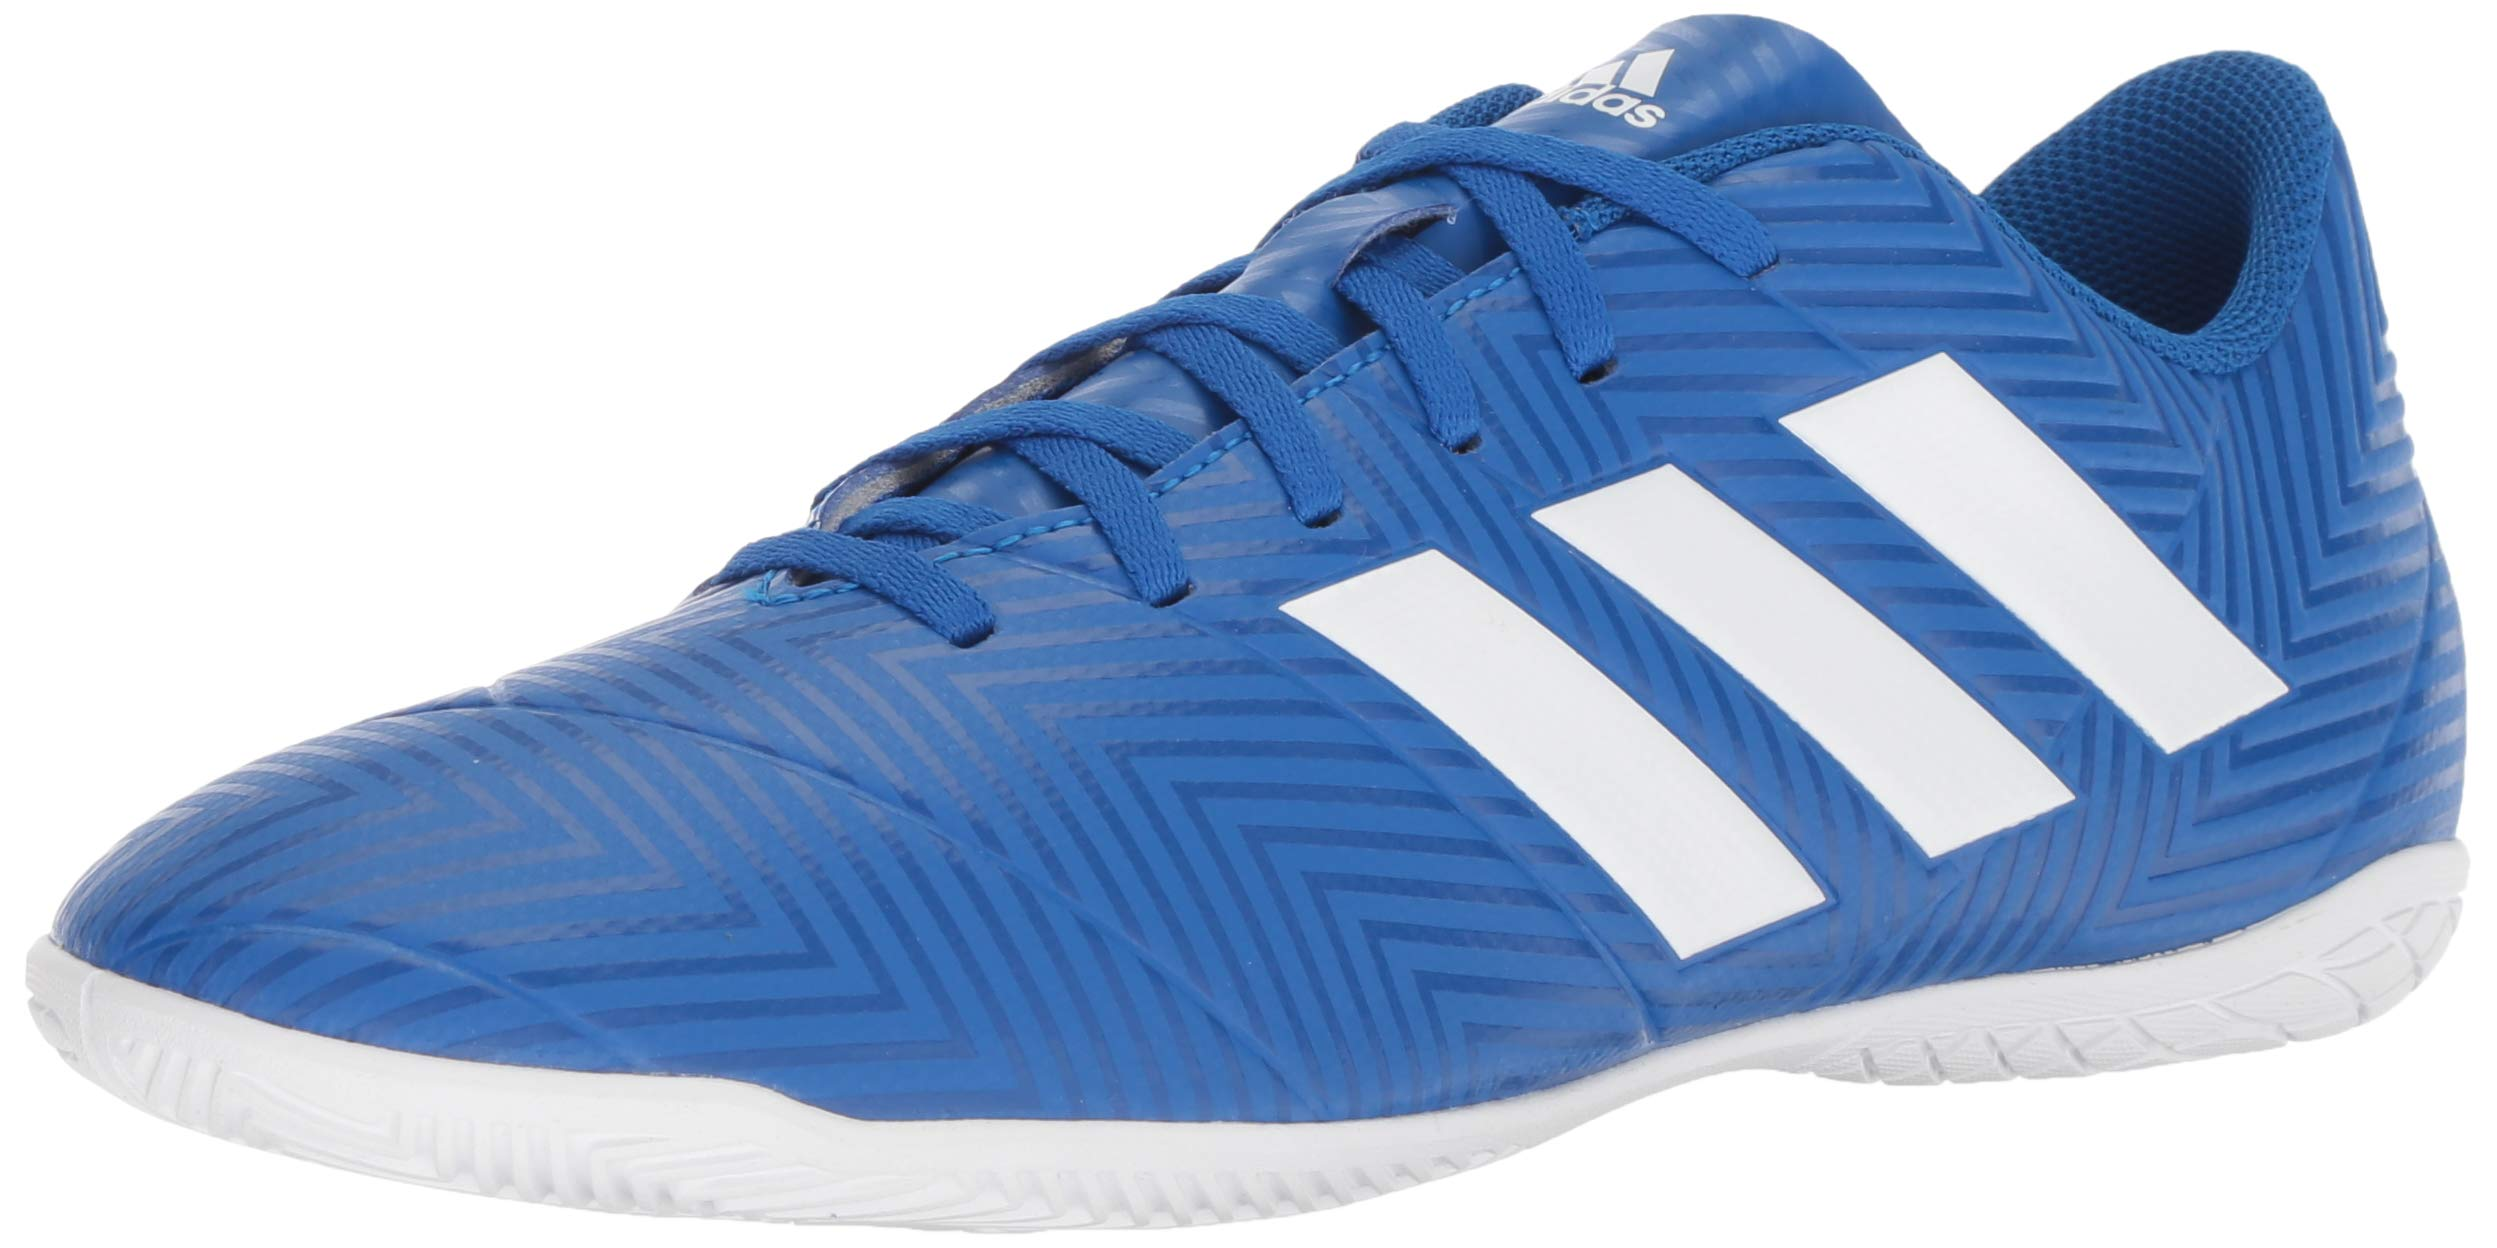 9f3b9384bb adidas Men's Nemeziz Tango 18.4 Indoor Soccer Shoe, Football  Blue/White/Football Blue, 10.5 M US